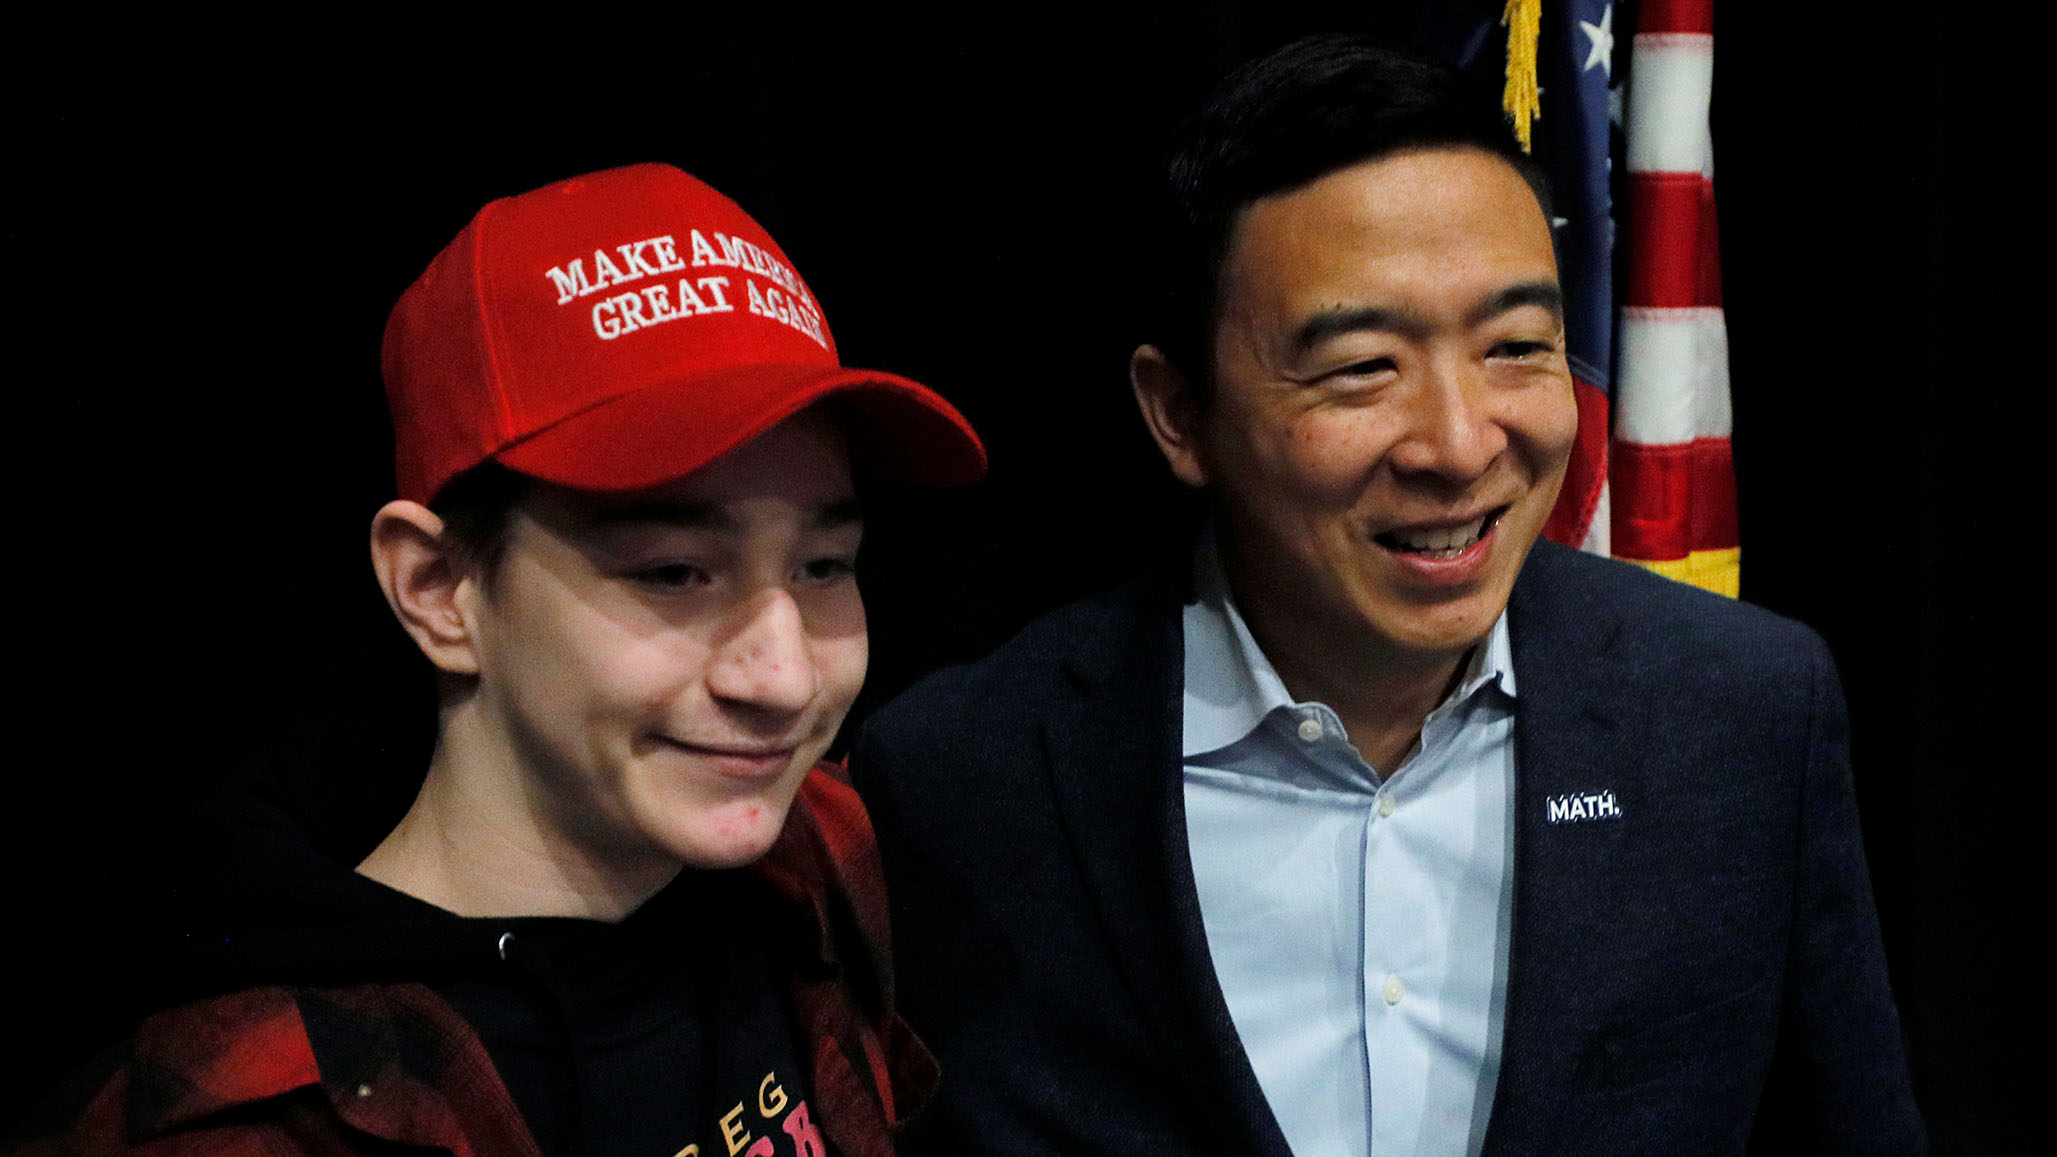 Why Andrew Yang Has Endured While Traditional Democratic Candidates Have Not